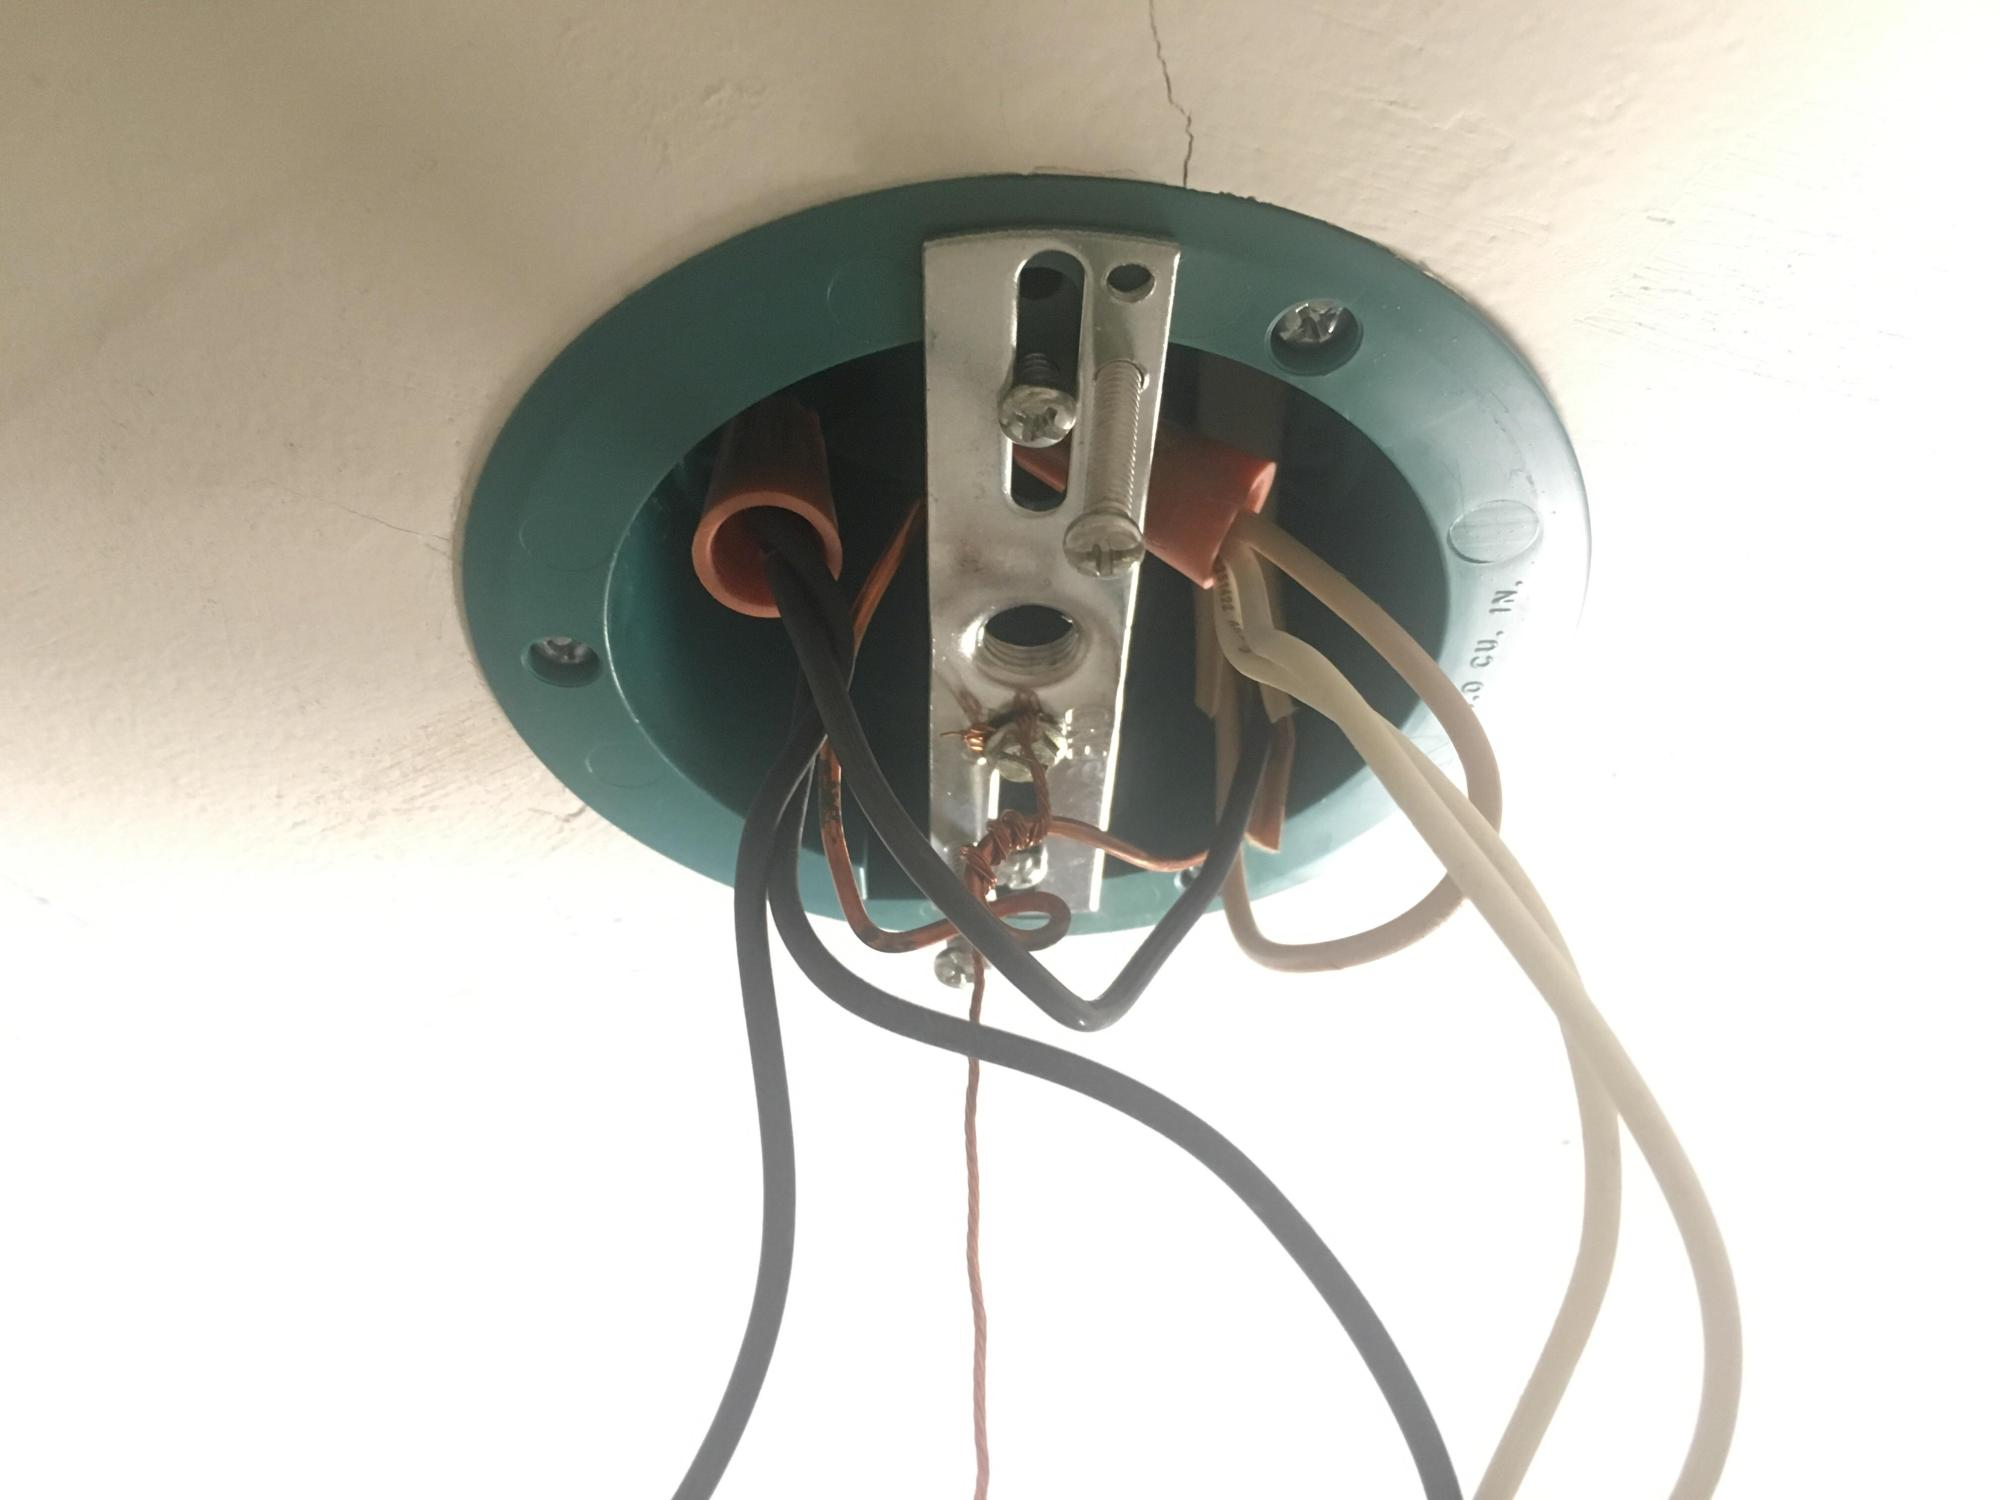 hight resolution of replacing my first light fixture new one has 3 wires clearly light fixture only has black white wiring